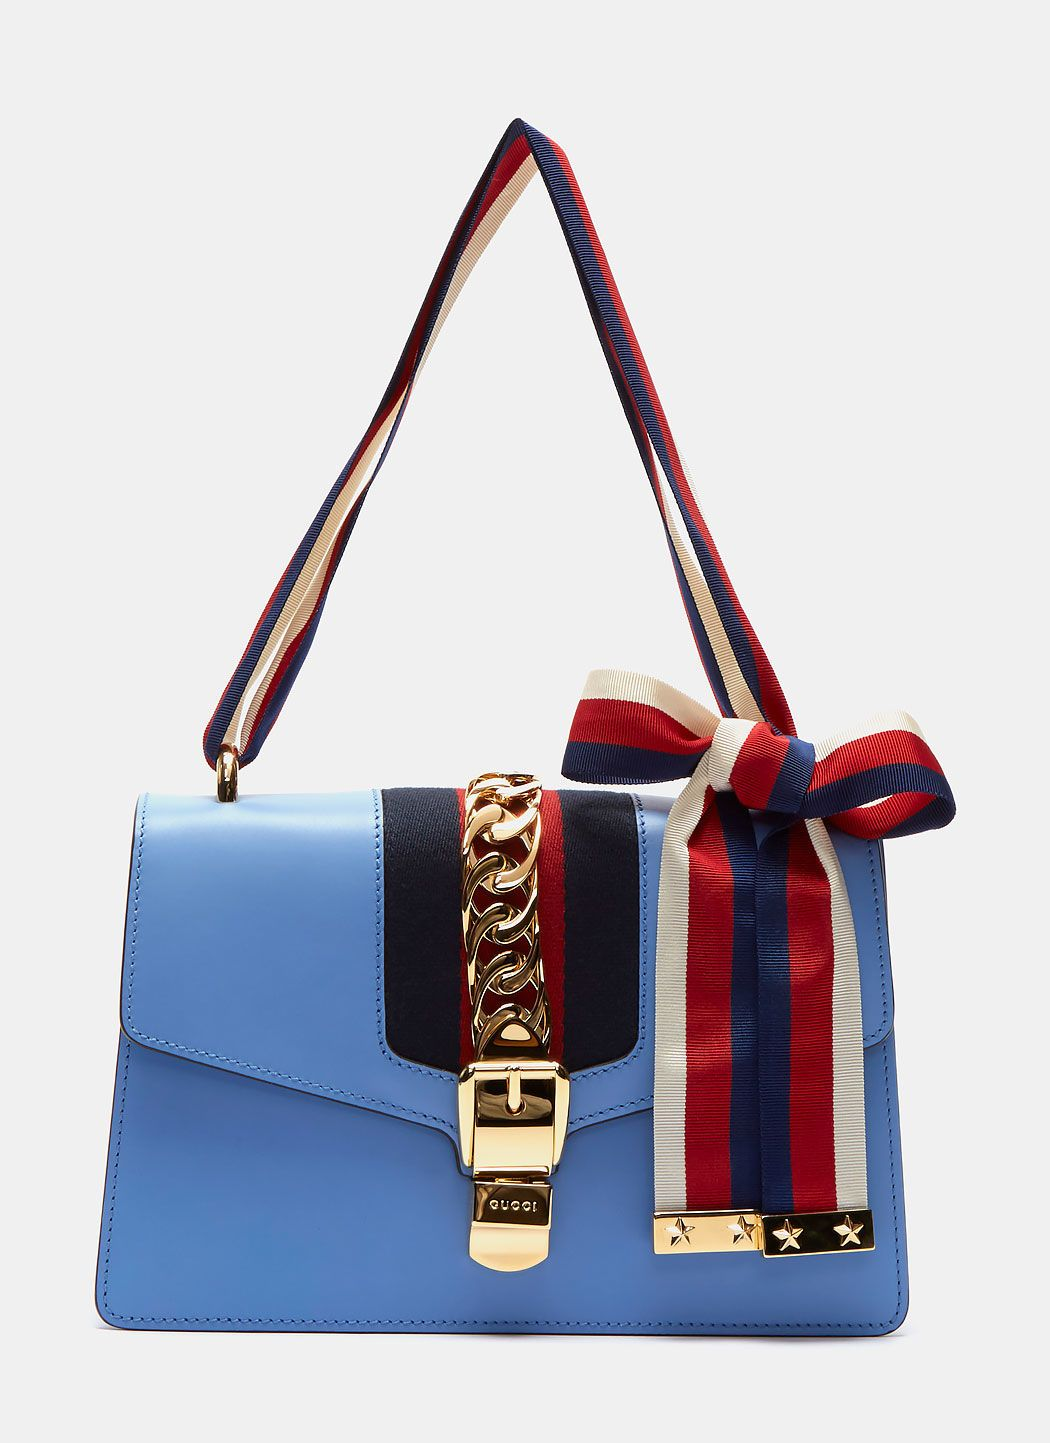 dfab72bd1ad3 GUCCI Women'S Sylvie Medium Handbag In Blue. #gucci #bags #shoulder bags  #lining #suede #